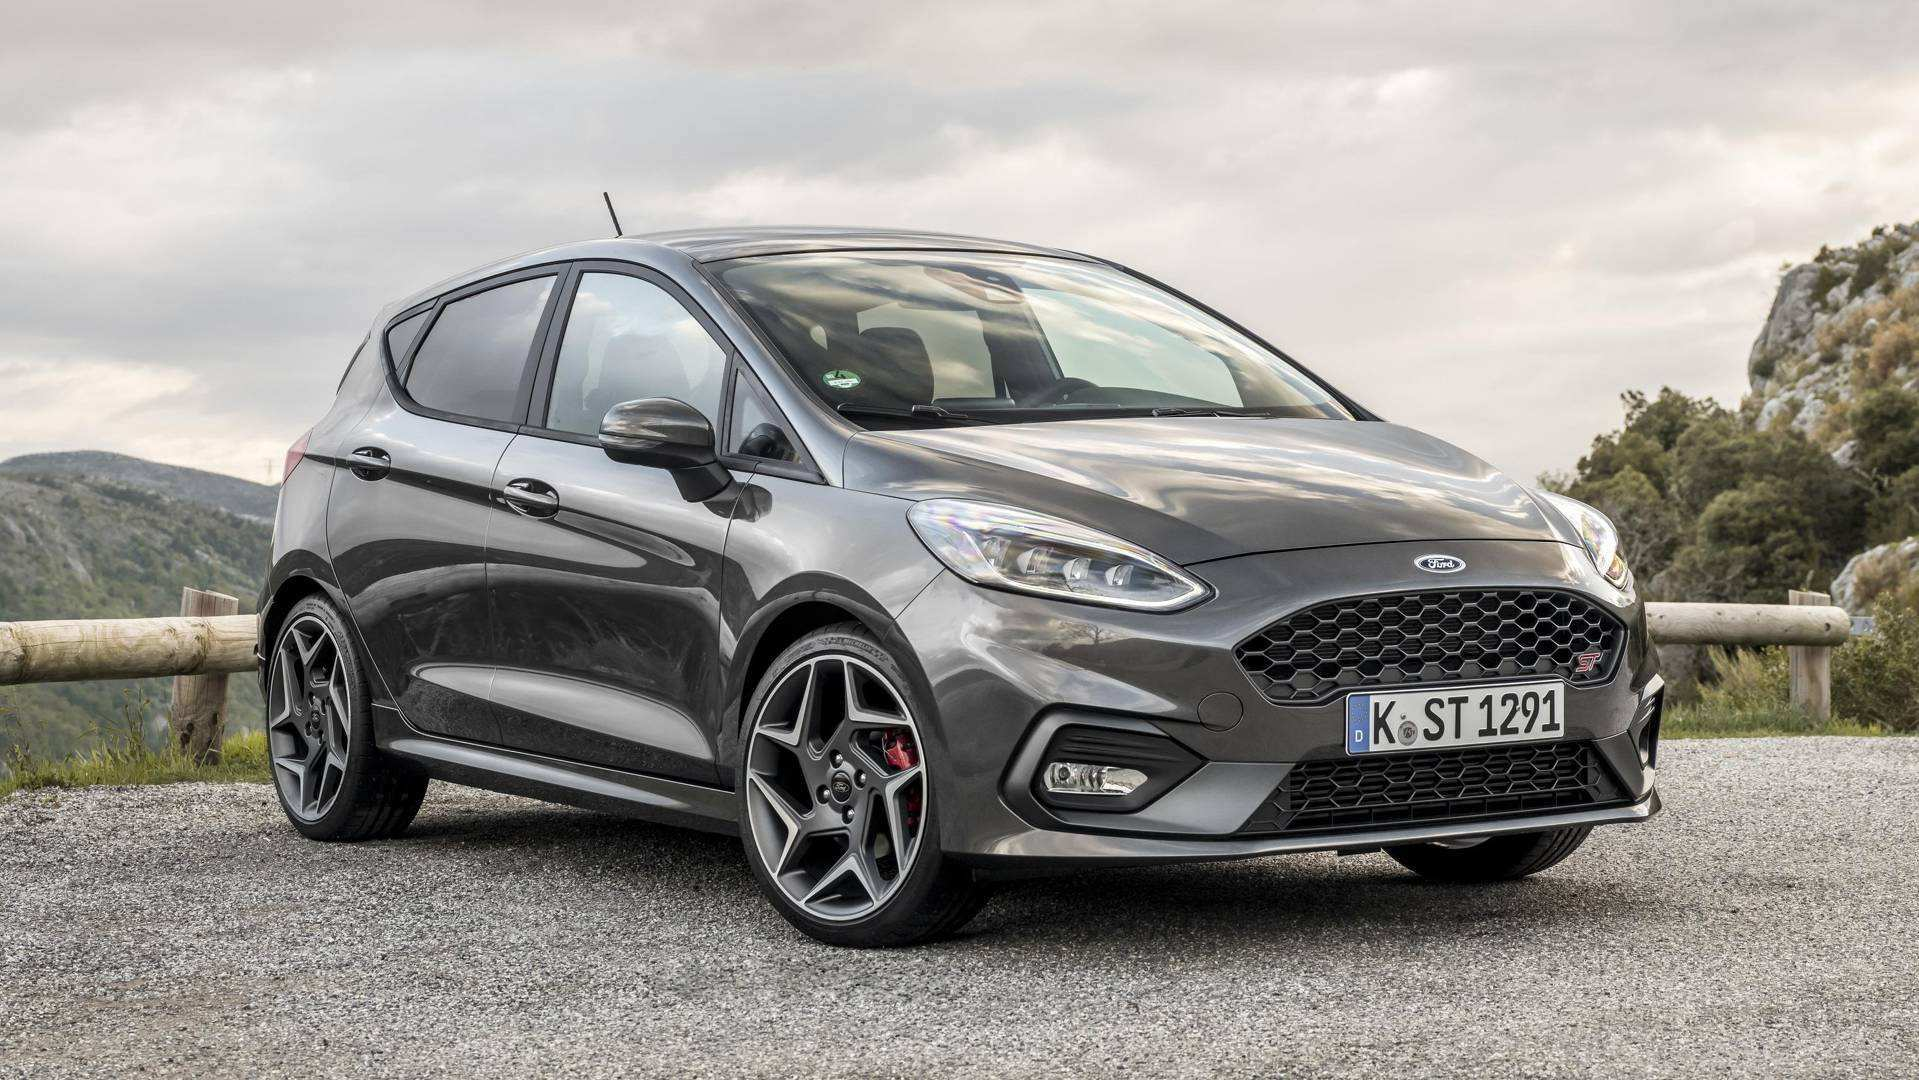 43 Best Ford Fiesta 2020 Wallpaper